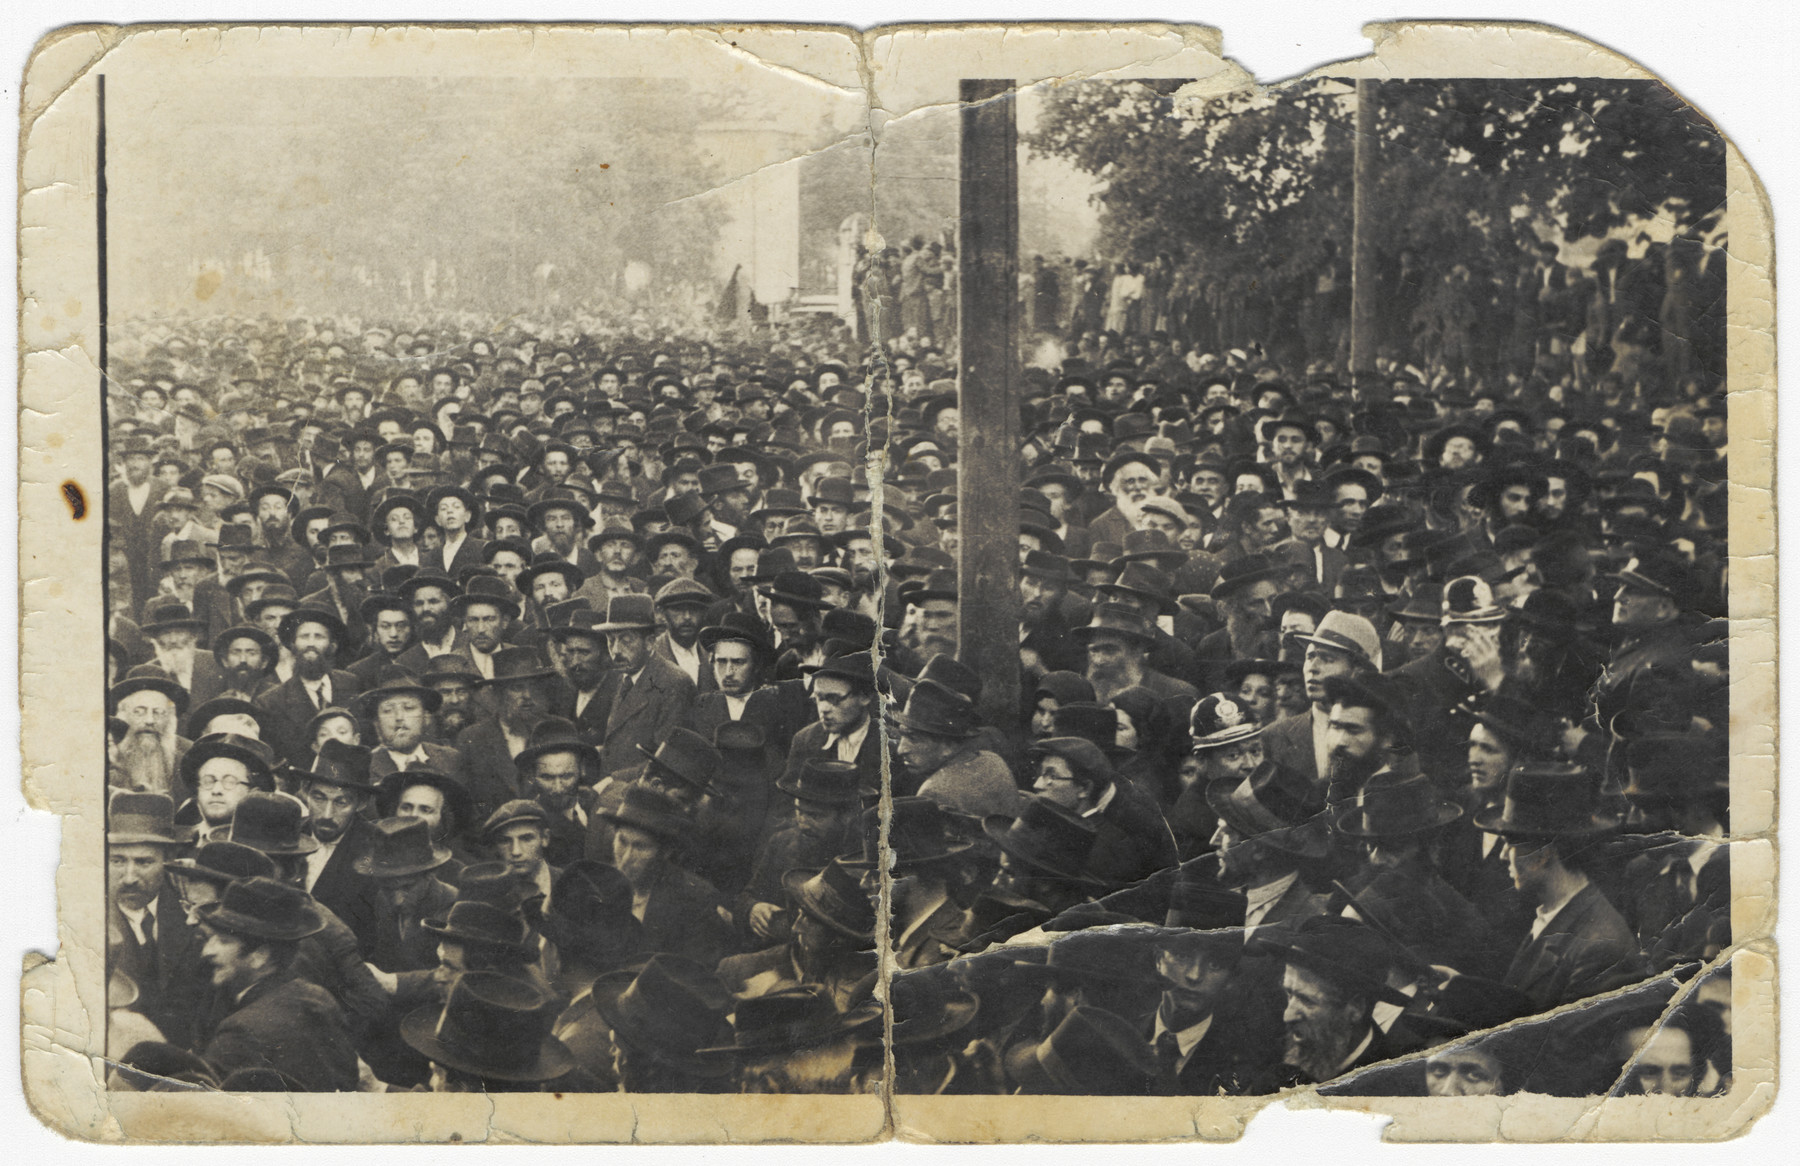 A large crowd gather during the funeral of Rabbi Chaim Elazar Spira of Munkacz.  Rabbi Boruch Rabinovich can be seen in the lower left-hand corner.